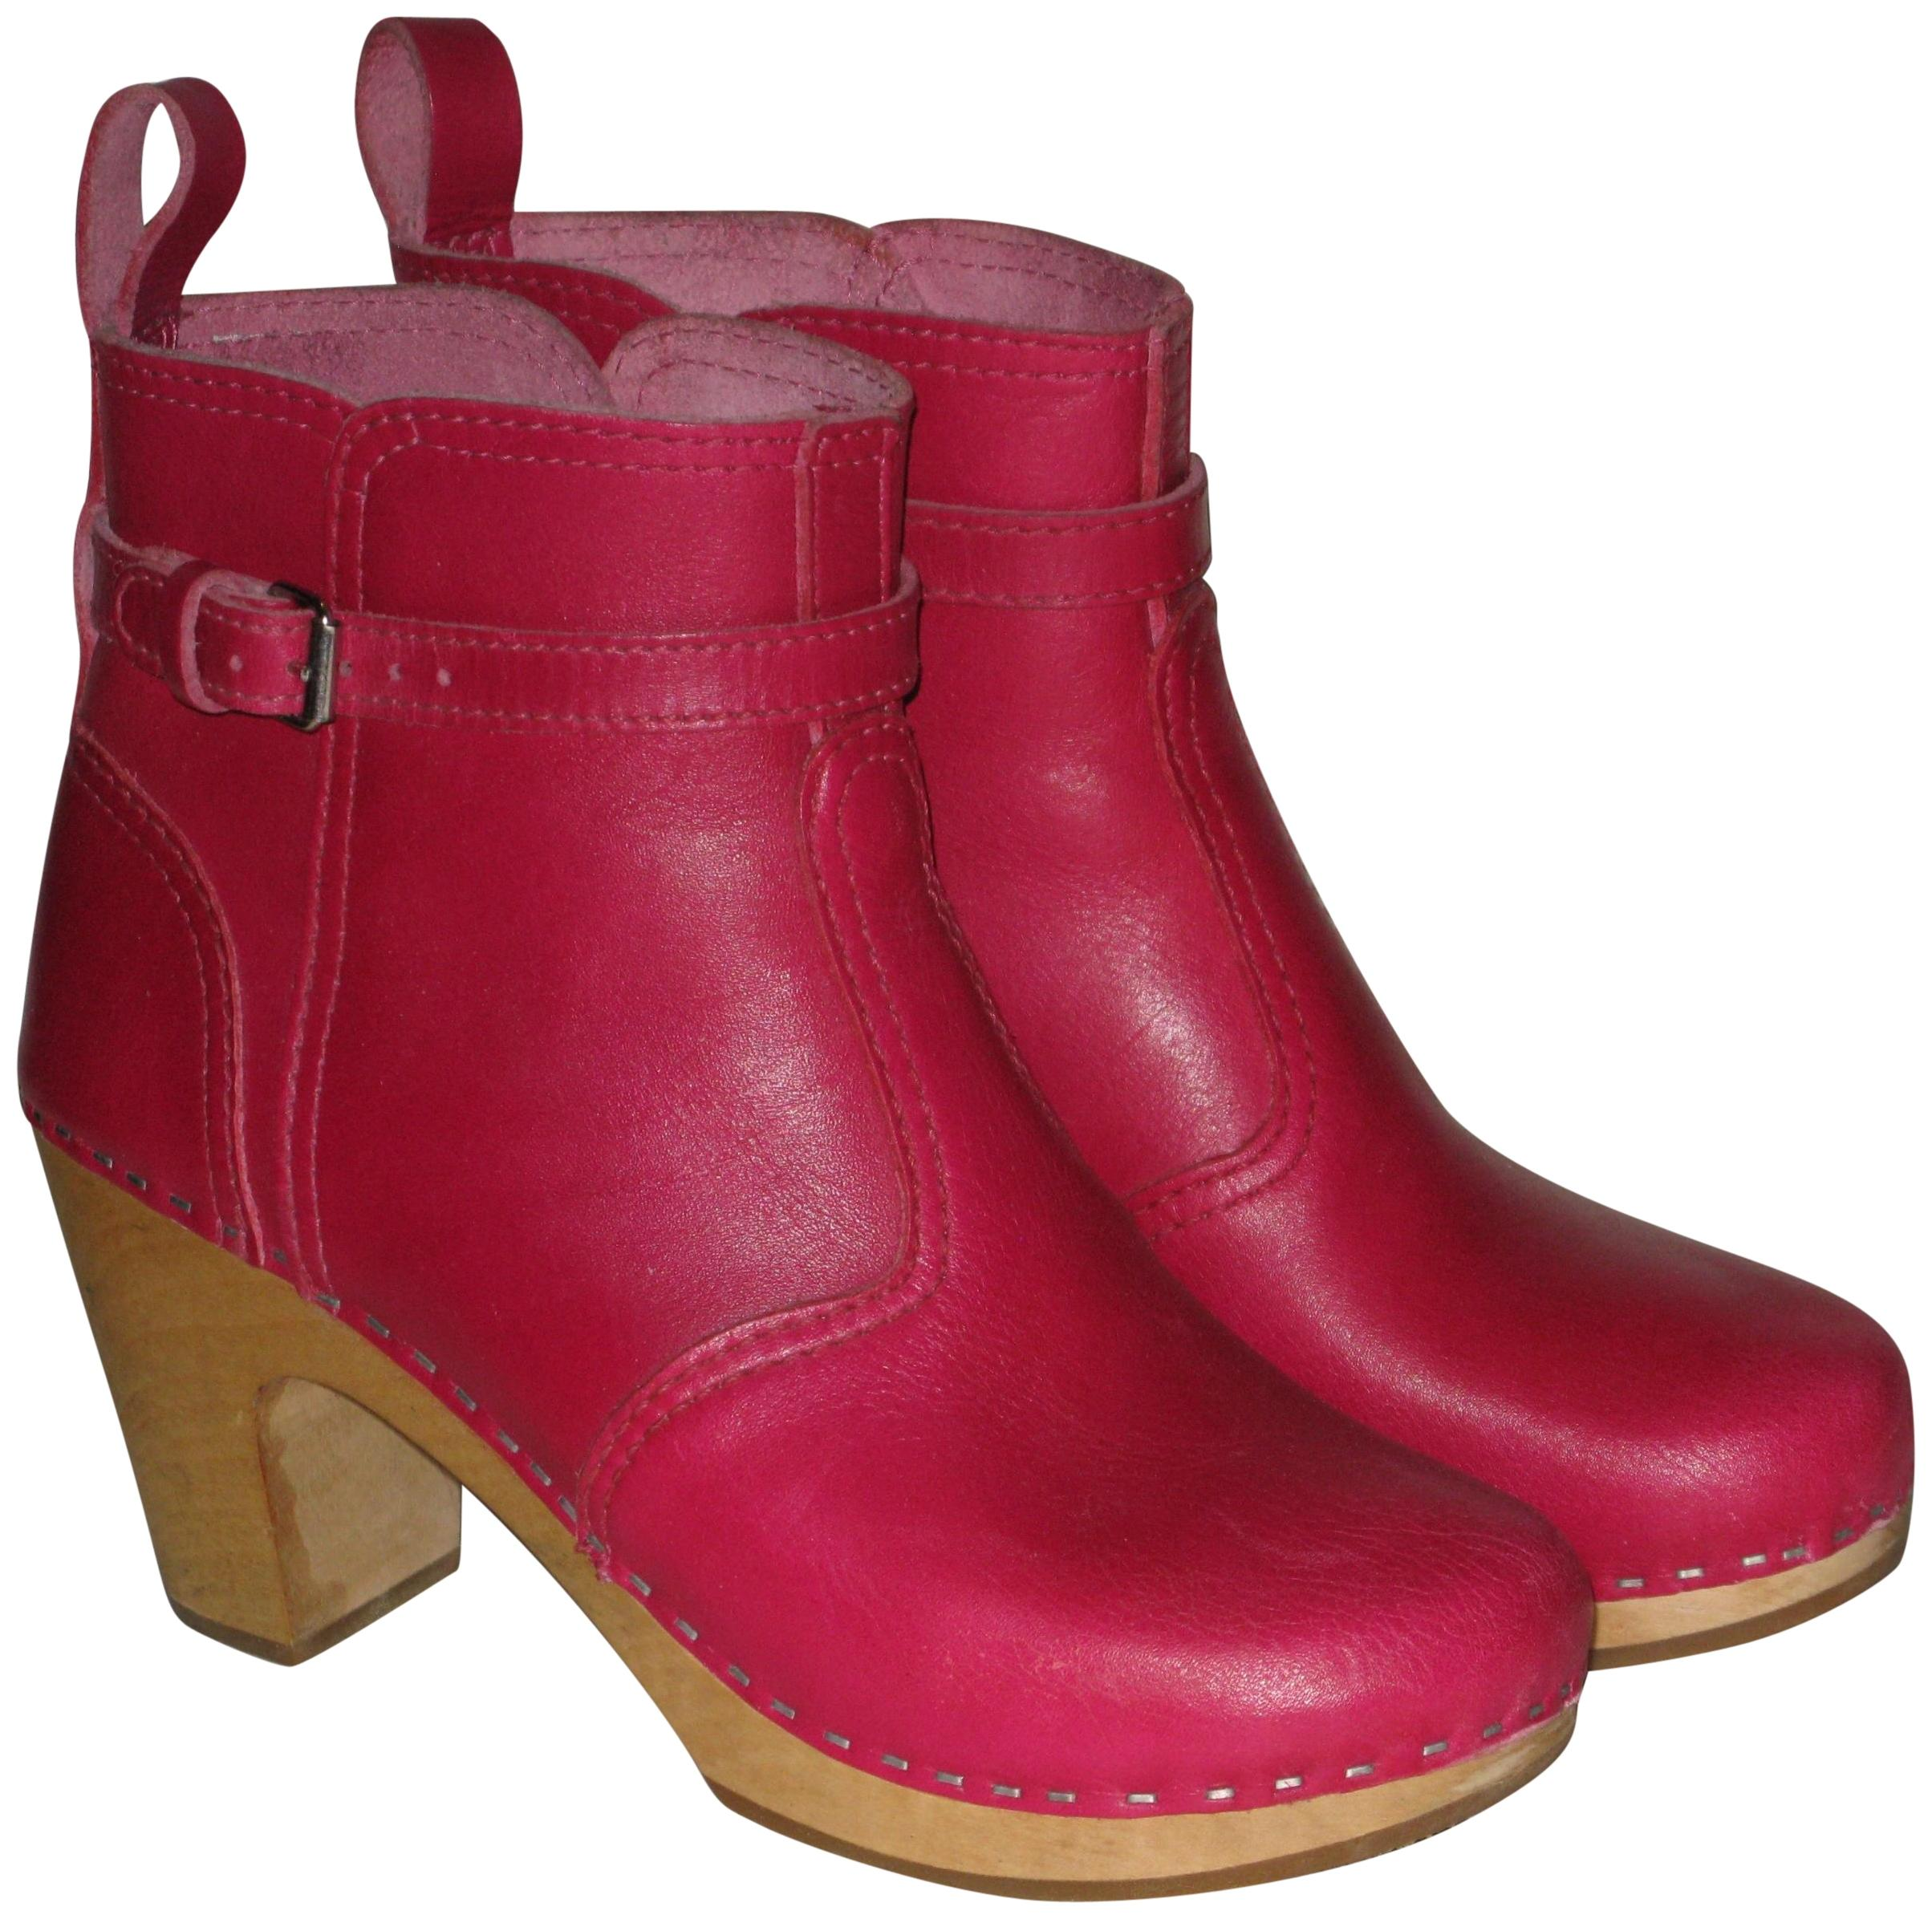 Footaction Precio Barato Hasbeens Womens Zip it Super High Red Leather Boots 40 EU La Calidad De Italia Al Por Mayor UP4yLR